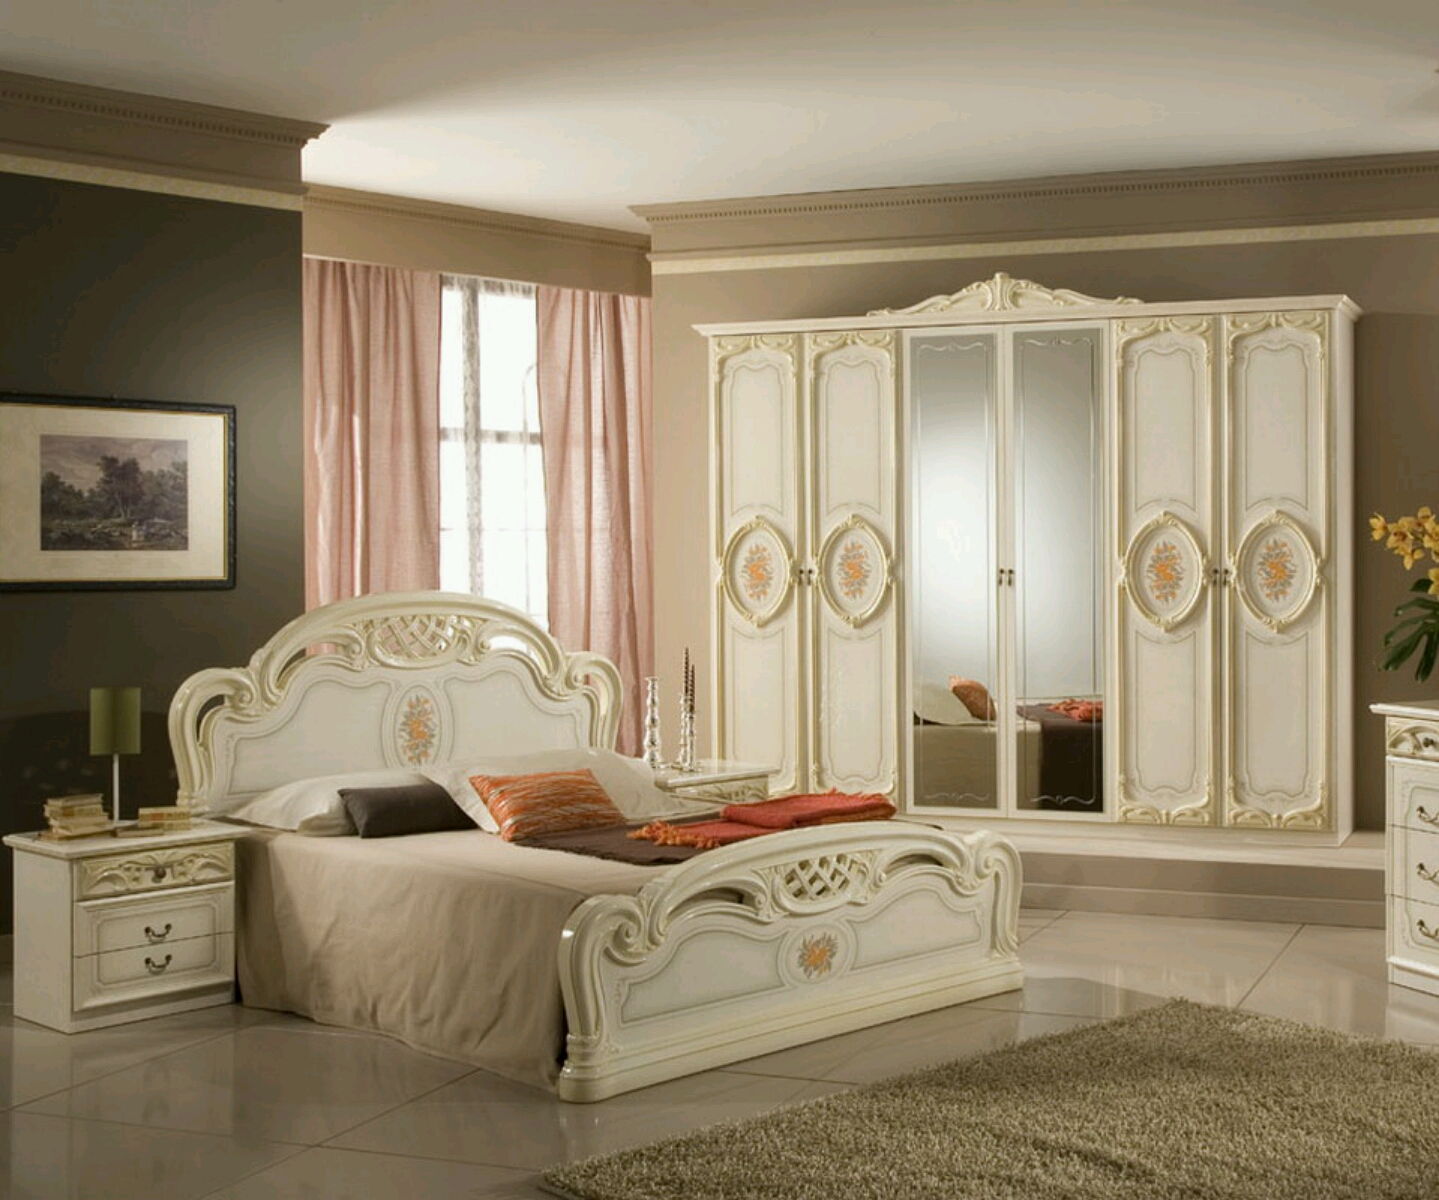 Modern luxury bedroom furniture designs ideas vintage for Bedroom furniture design